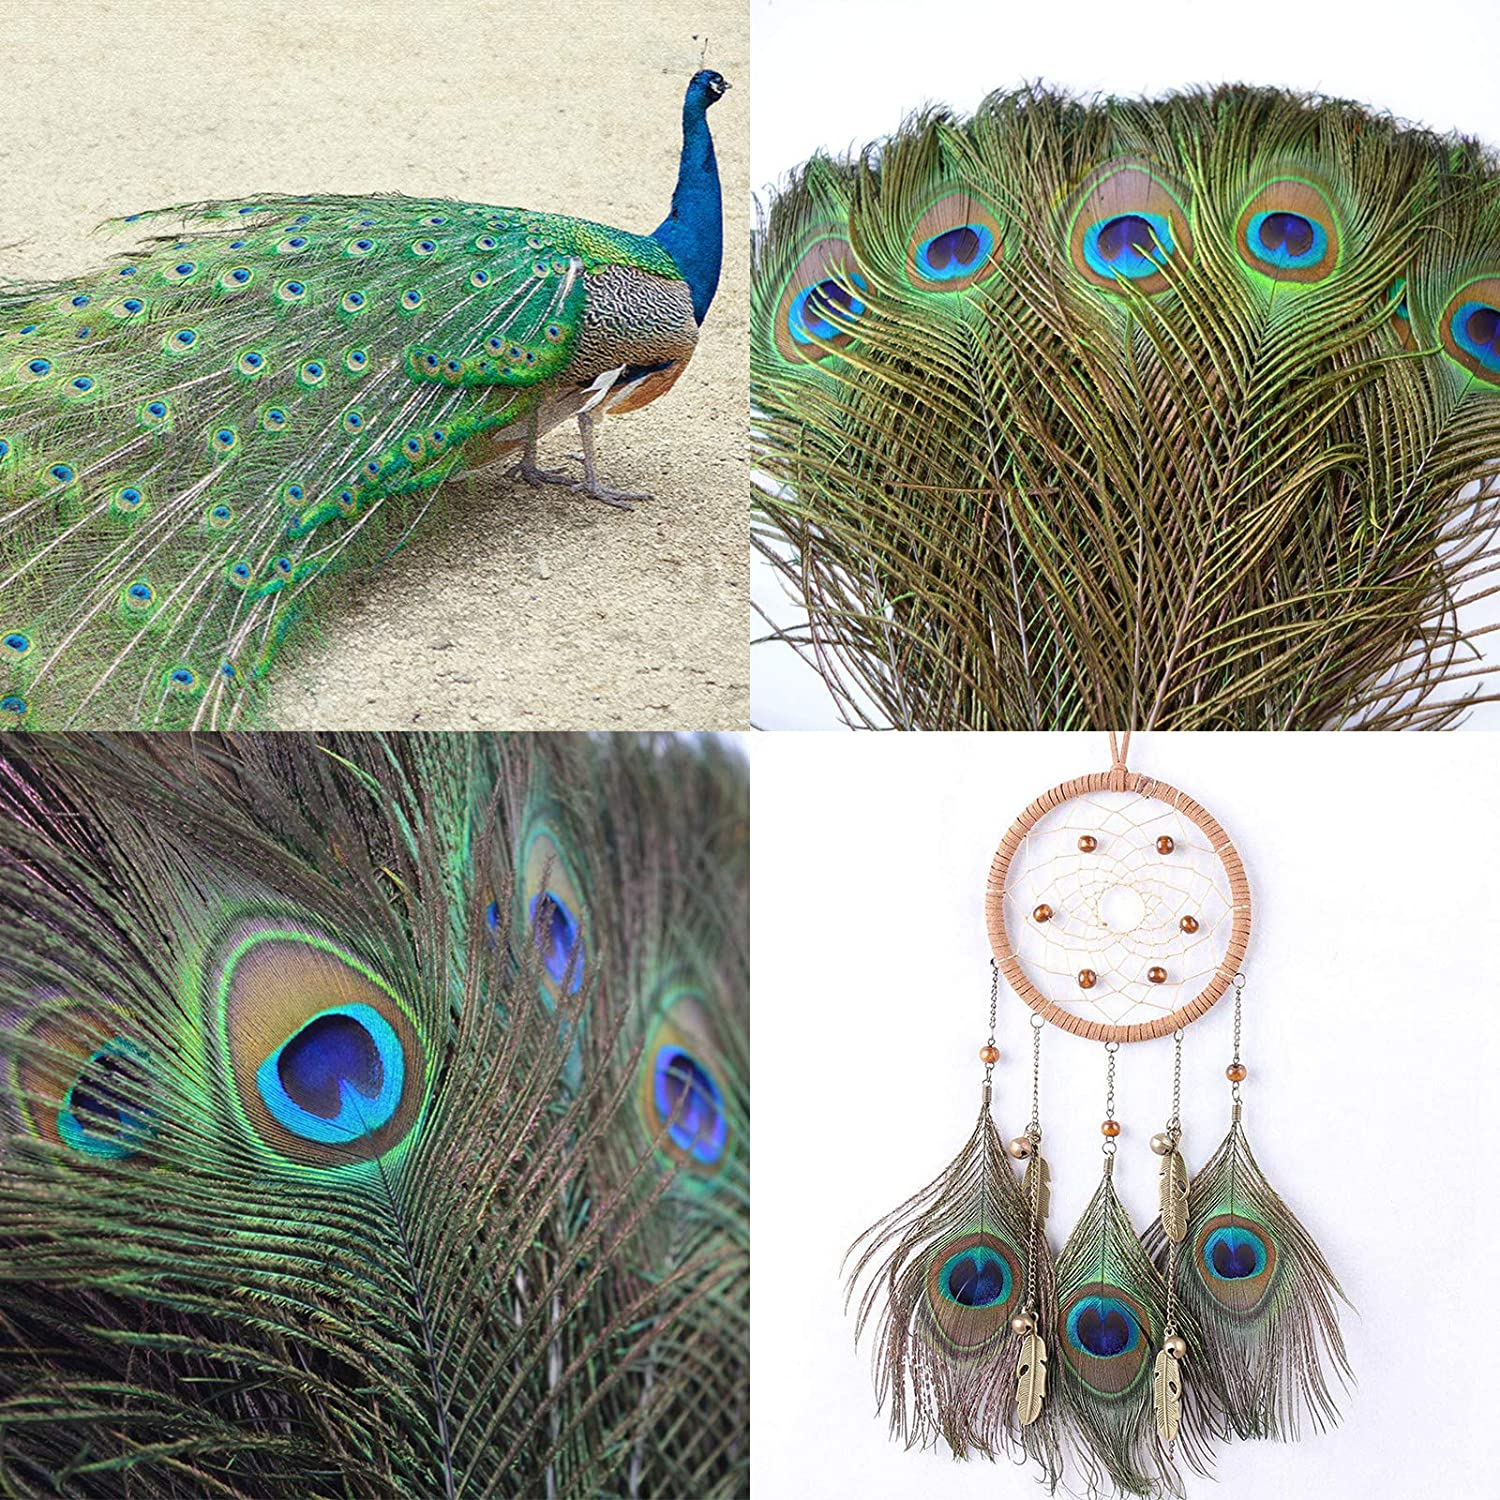 Turquoise, 15pcs Dreamcatcher Making Acerich Peacock Feathers Wedding Holiday Decoration Home 10-12 Inches Animal Birds Craft Feathers with Big Peacock Eye for Crafts